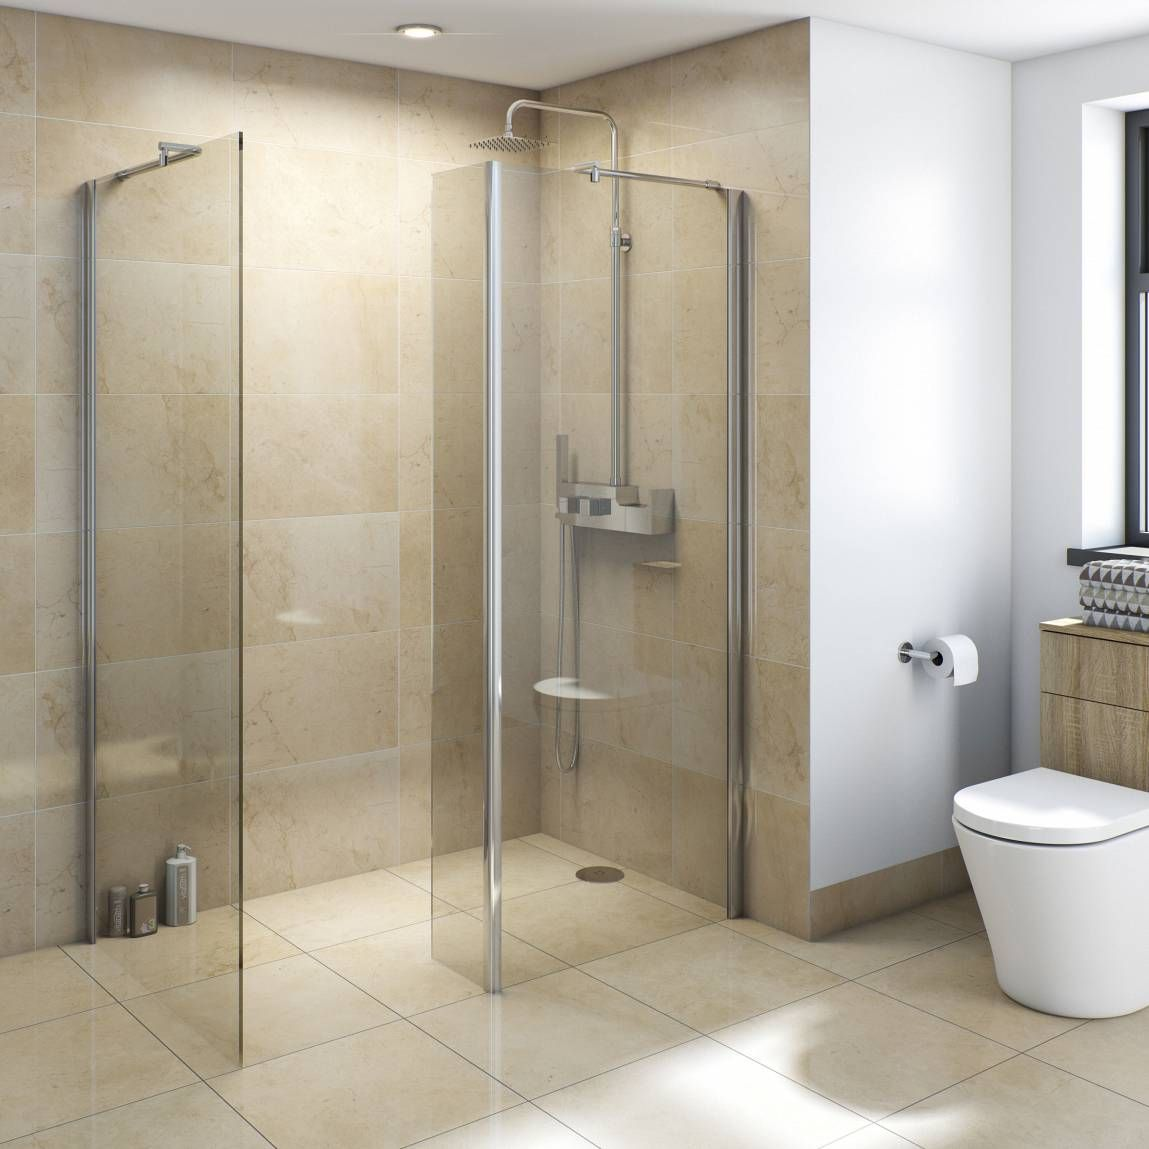 Shower enclosure buying guide | Pinterest | Shower cubicles, Cubicle ...